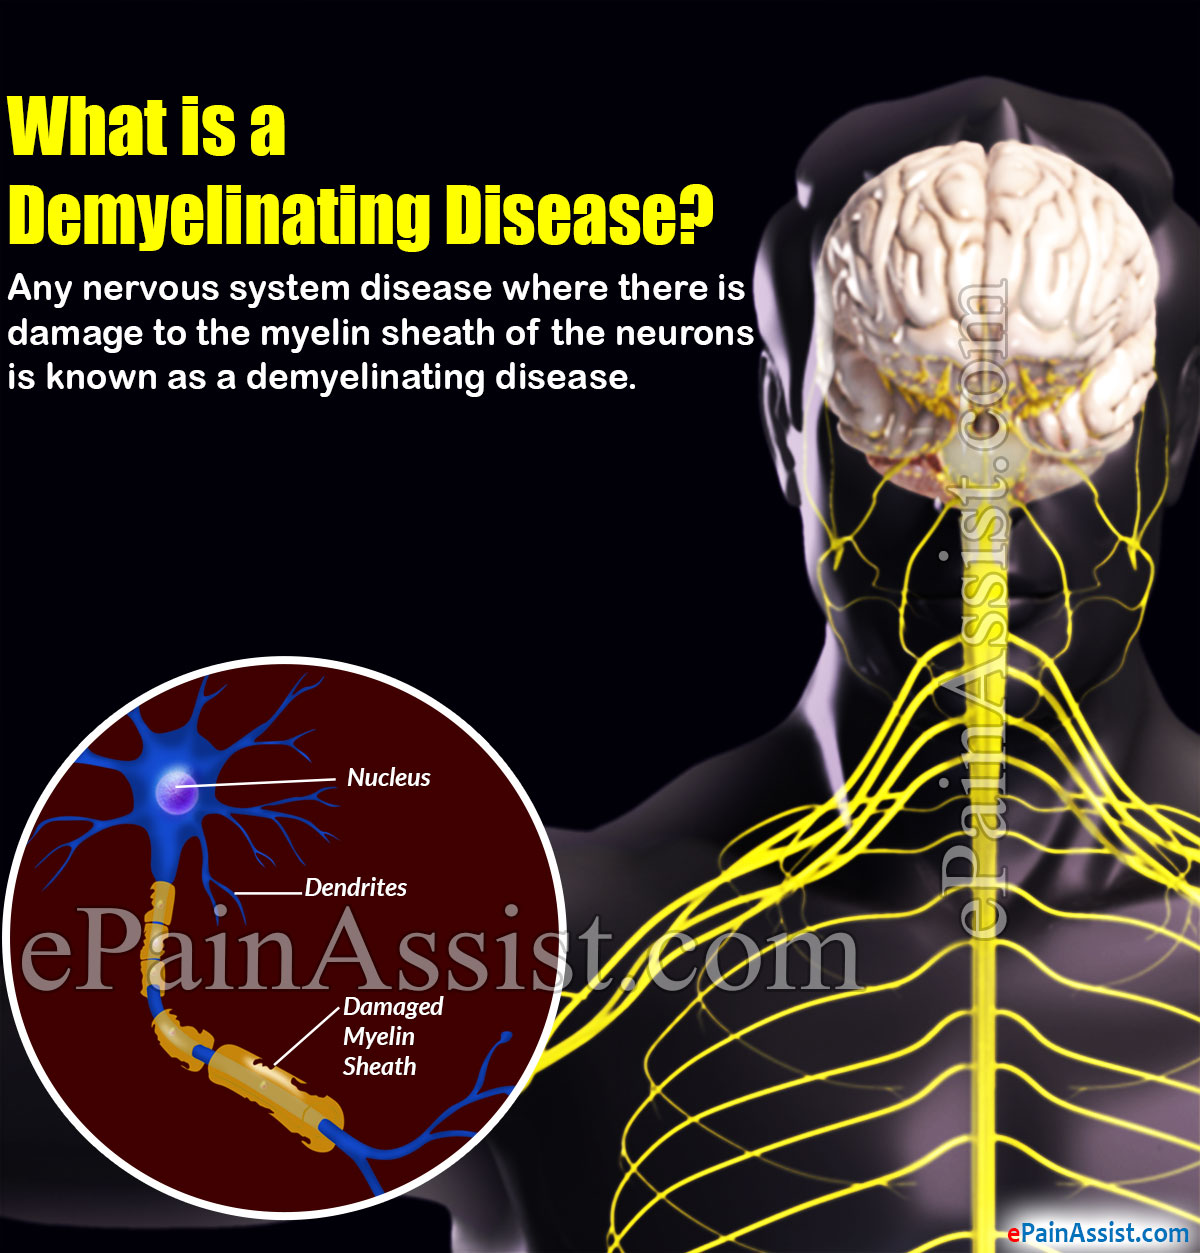 What is a Demyelinating Disease